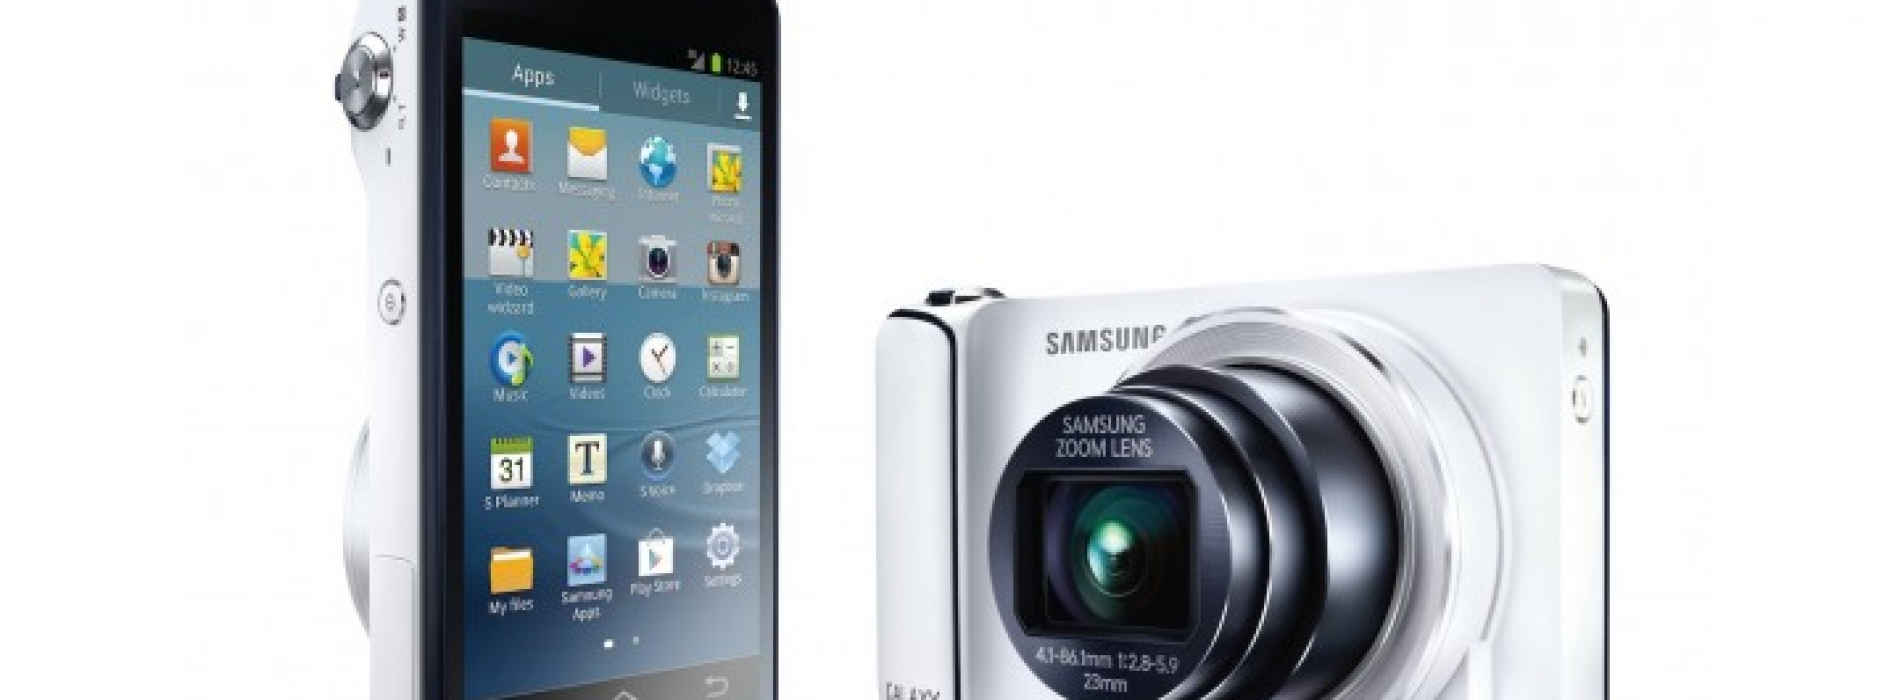 AT&T to offer $499 Samsung Galaxy Camera on November 16